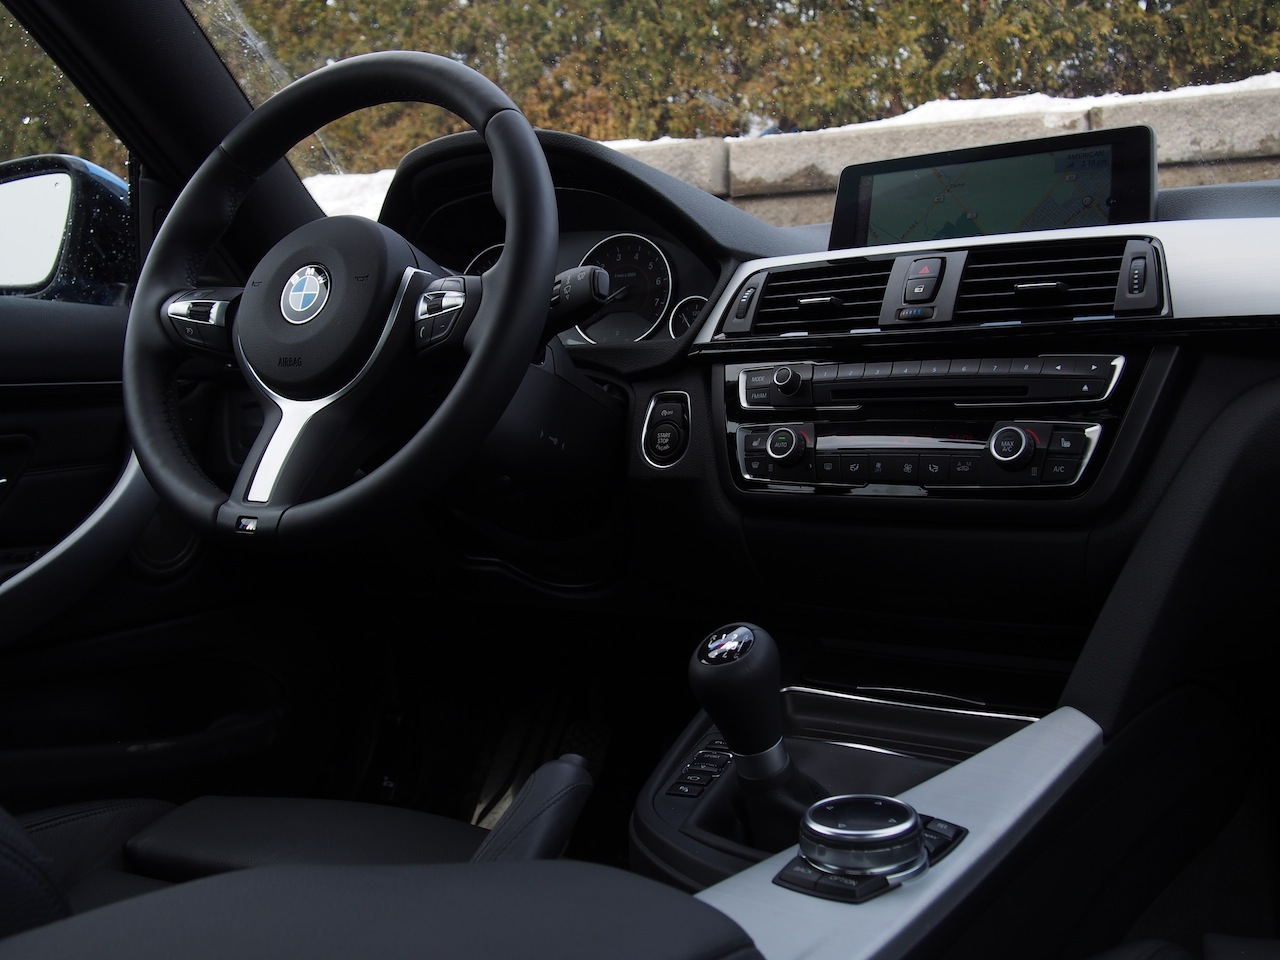 2014 bmw 435i xdrive review cars photos test drives and reviews canadian auto review. Black Bedroom Furniture Sets. Home Design Ideas